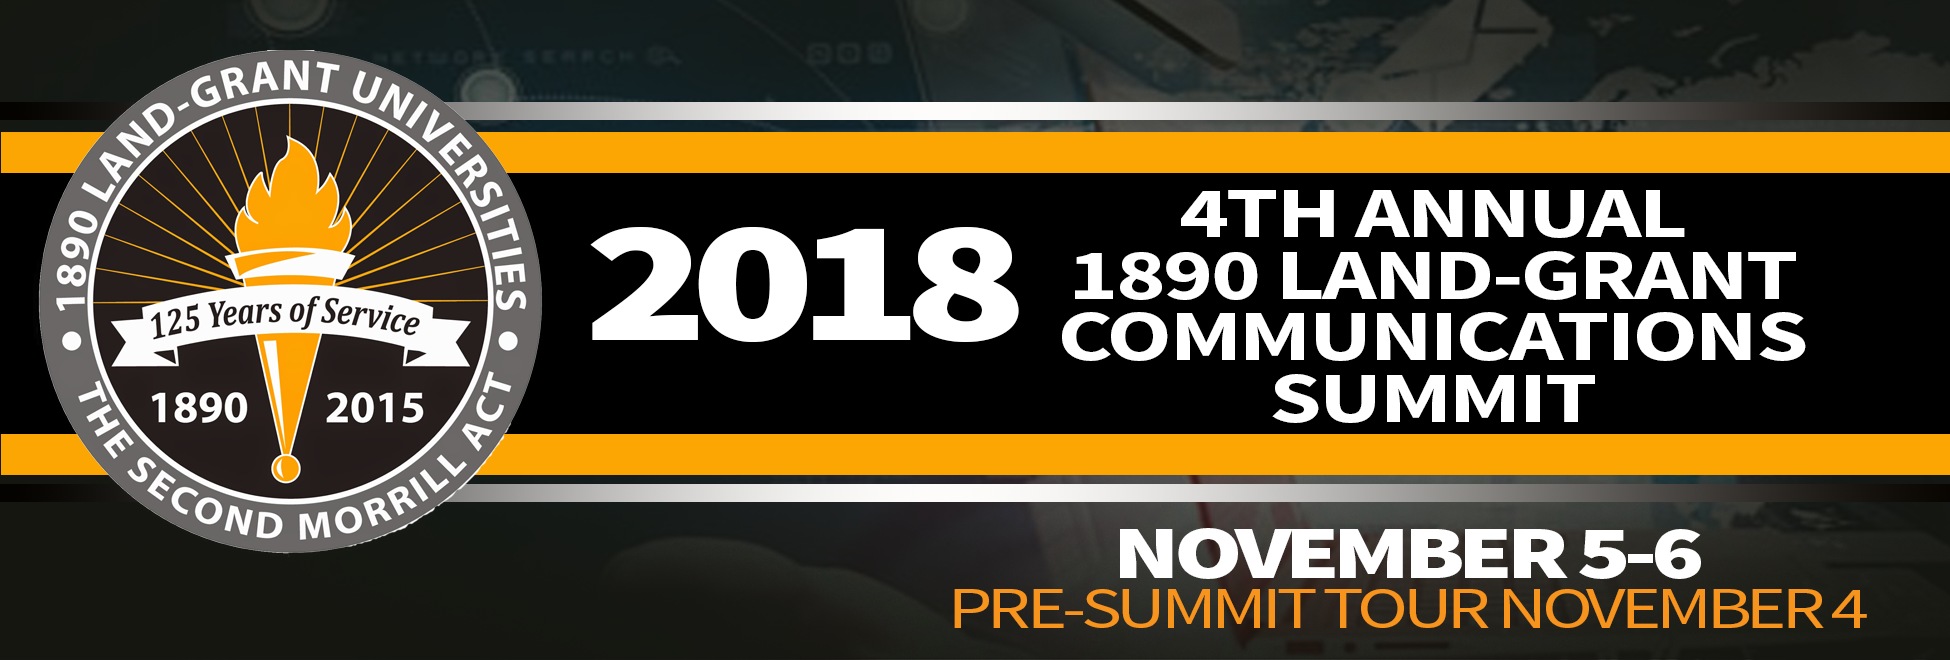 1890CommSummit_BANNER.png